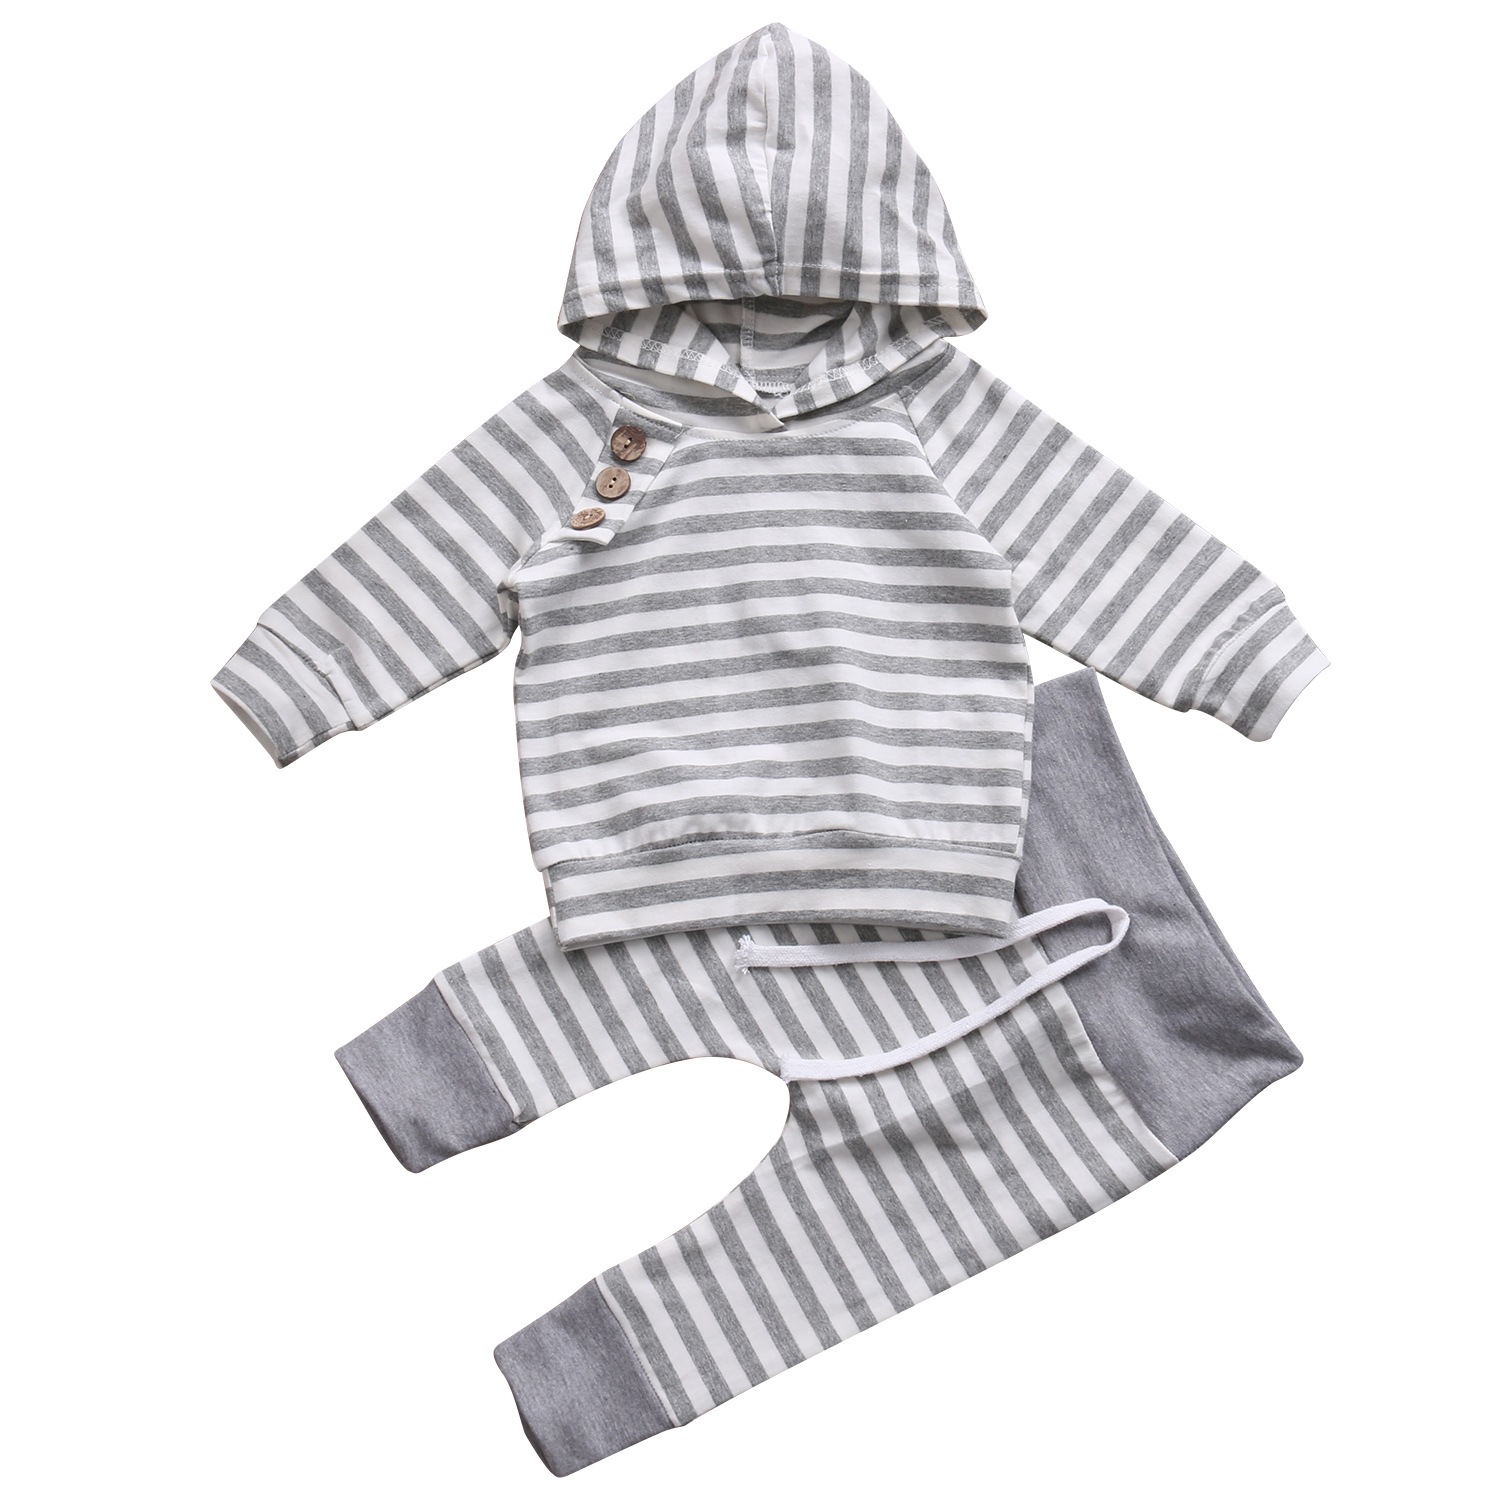 Toddler Newborn Infant Kids Baby Boy Girl Hoodie Tops Long Sleeve Shirt Pants Striped Outfit 2Pcs Set Clothes 2Pcs Set baby fox print clothes set newborn baby boy girl long sleeve t shirt tops pants 2017 new hot fall bebes outfit kids clothing set